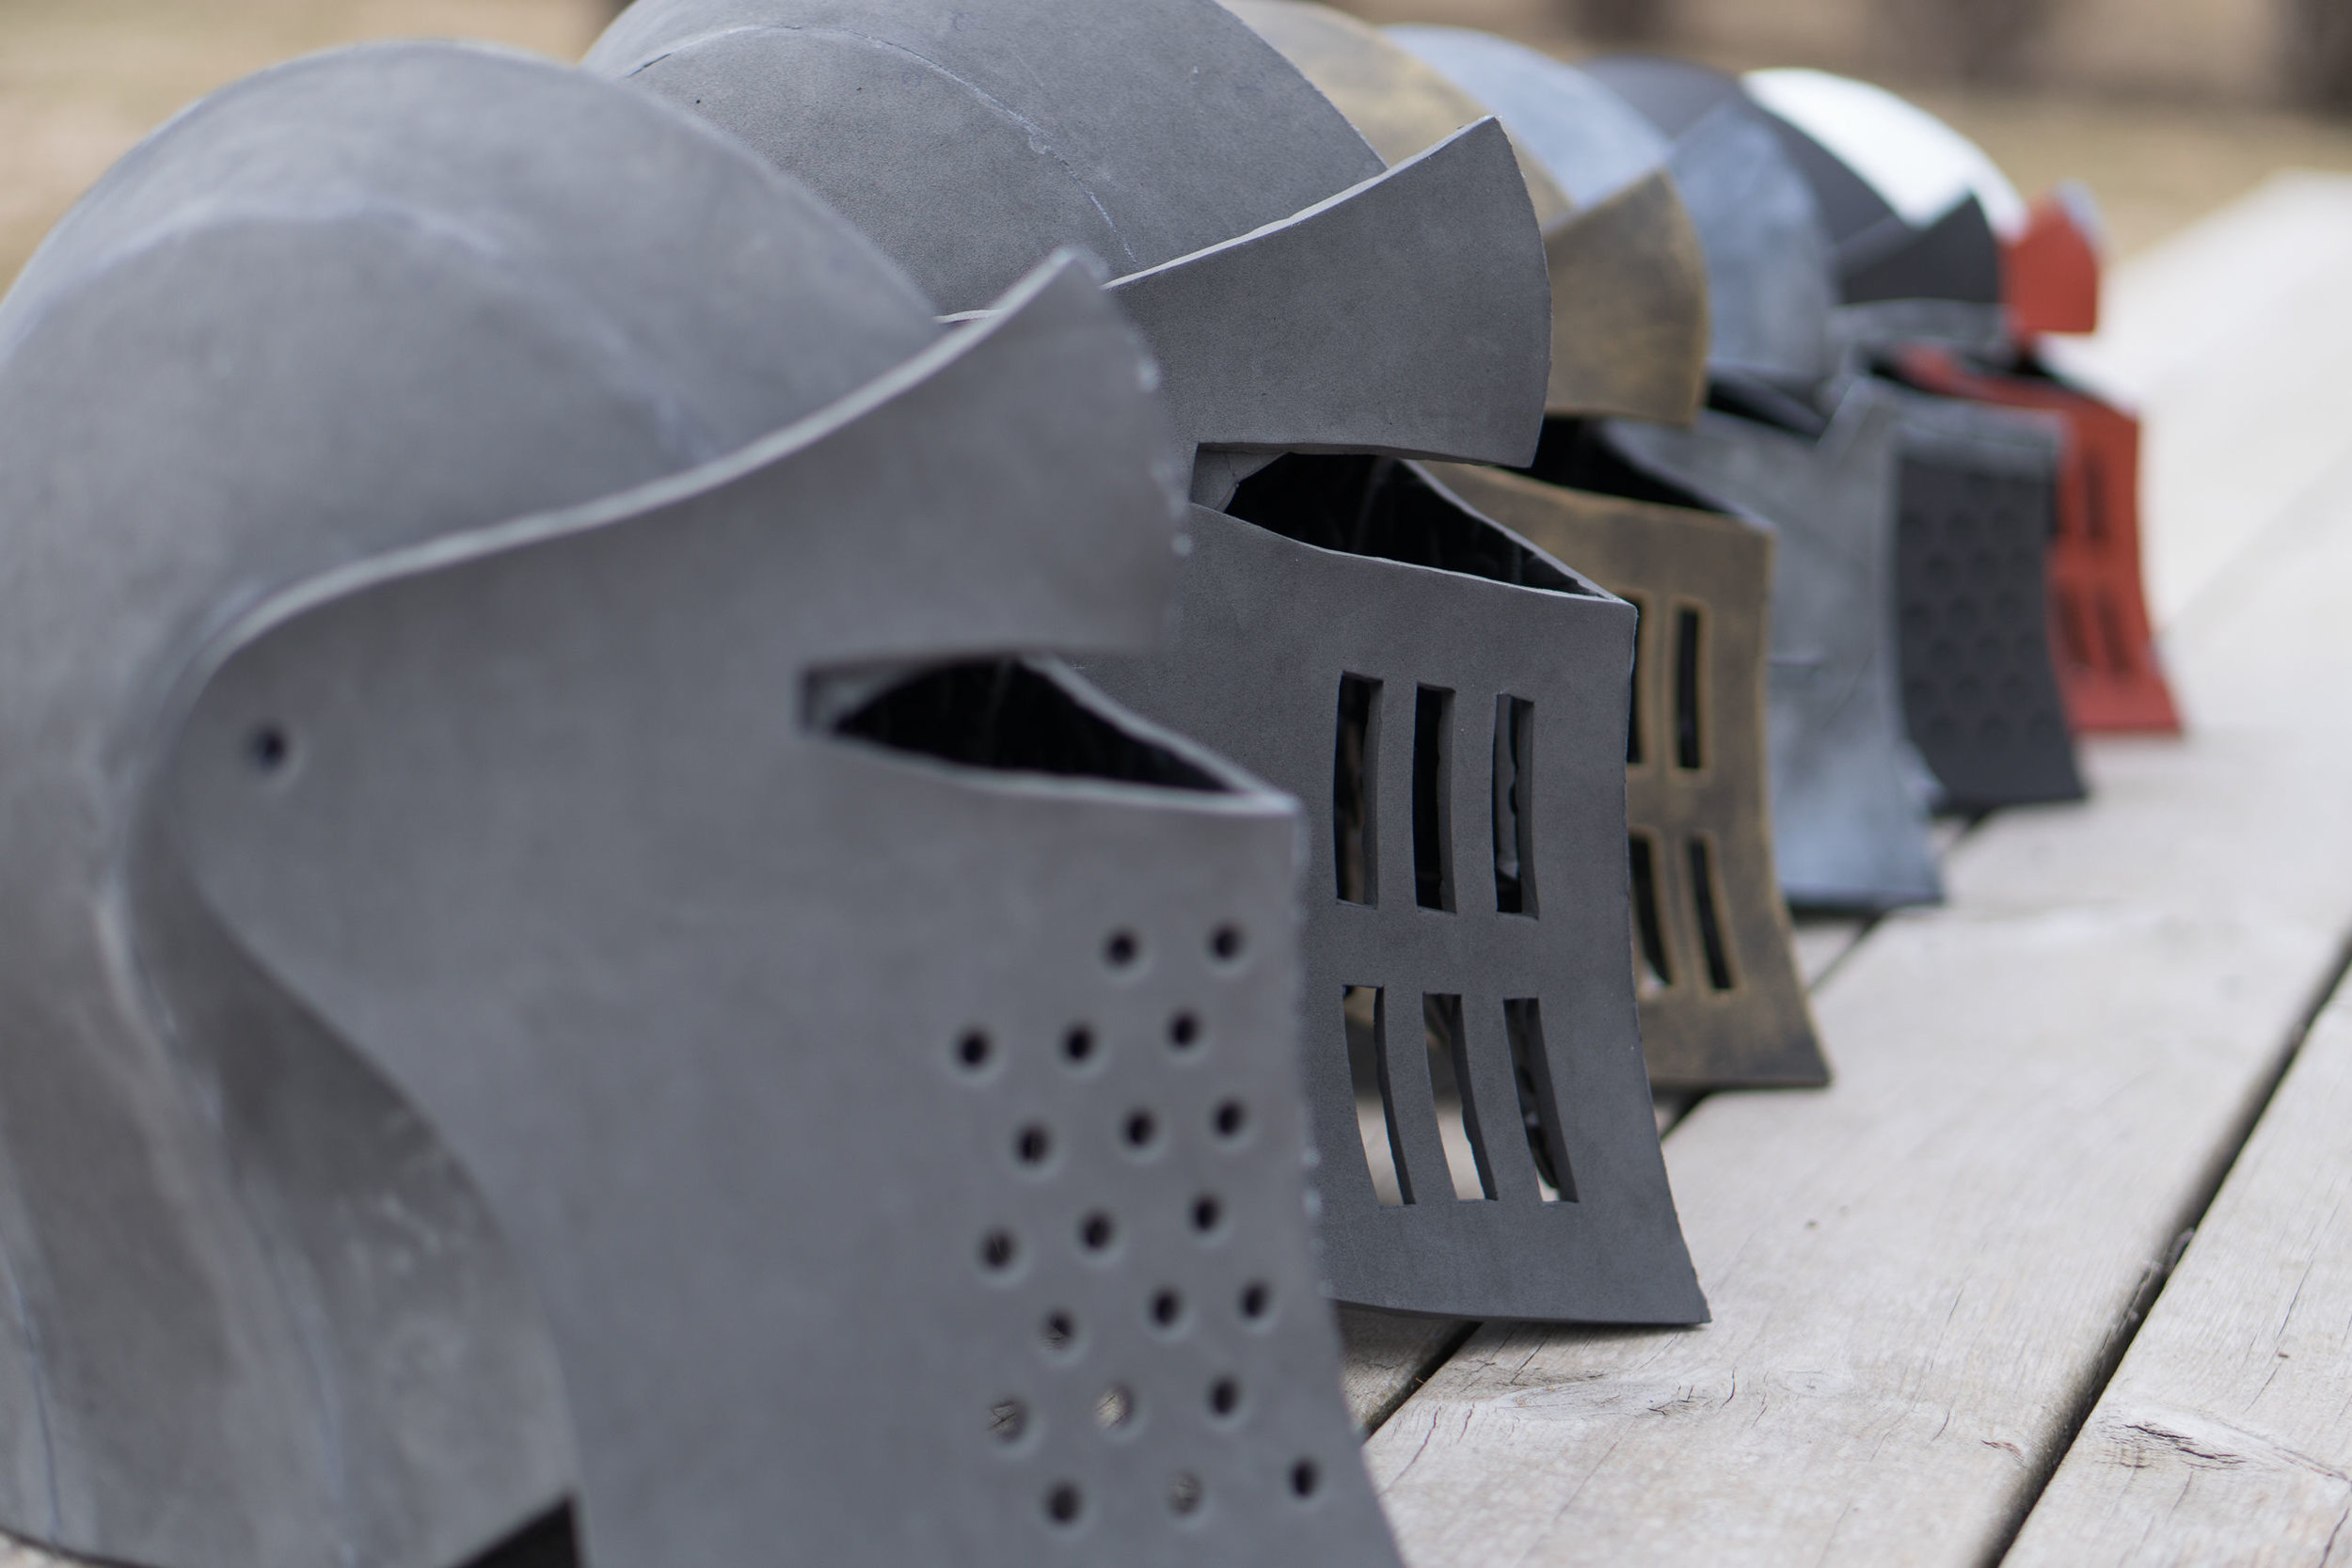 All the different knight helmet sizes lined up, ready to go.